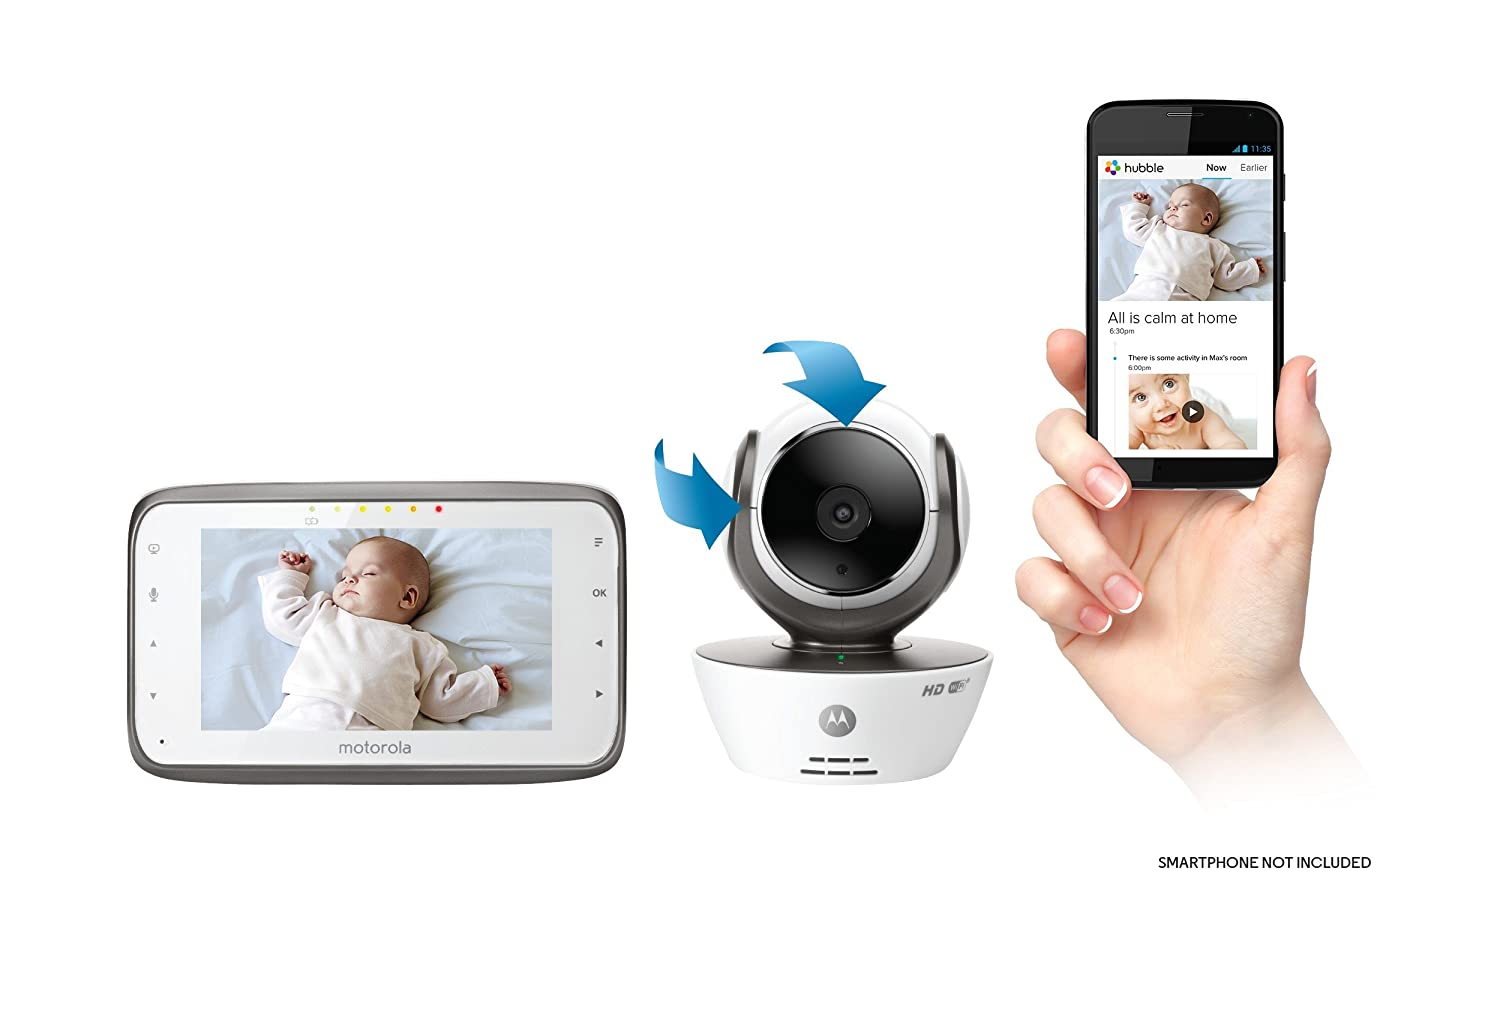 motorola 5 portable digital video baby monitor. amazon.com : motorola mbp854connect dual mode baby monitor with 4.3-inch lcd parent and wi-fi internet viewing 5 portable digital video